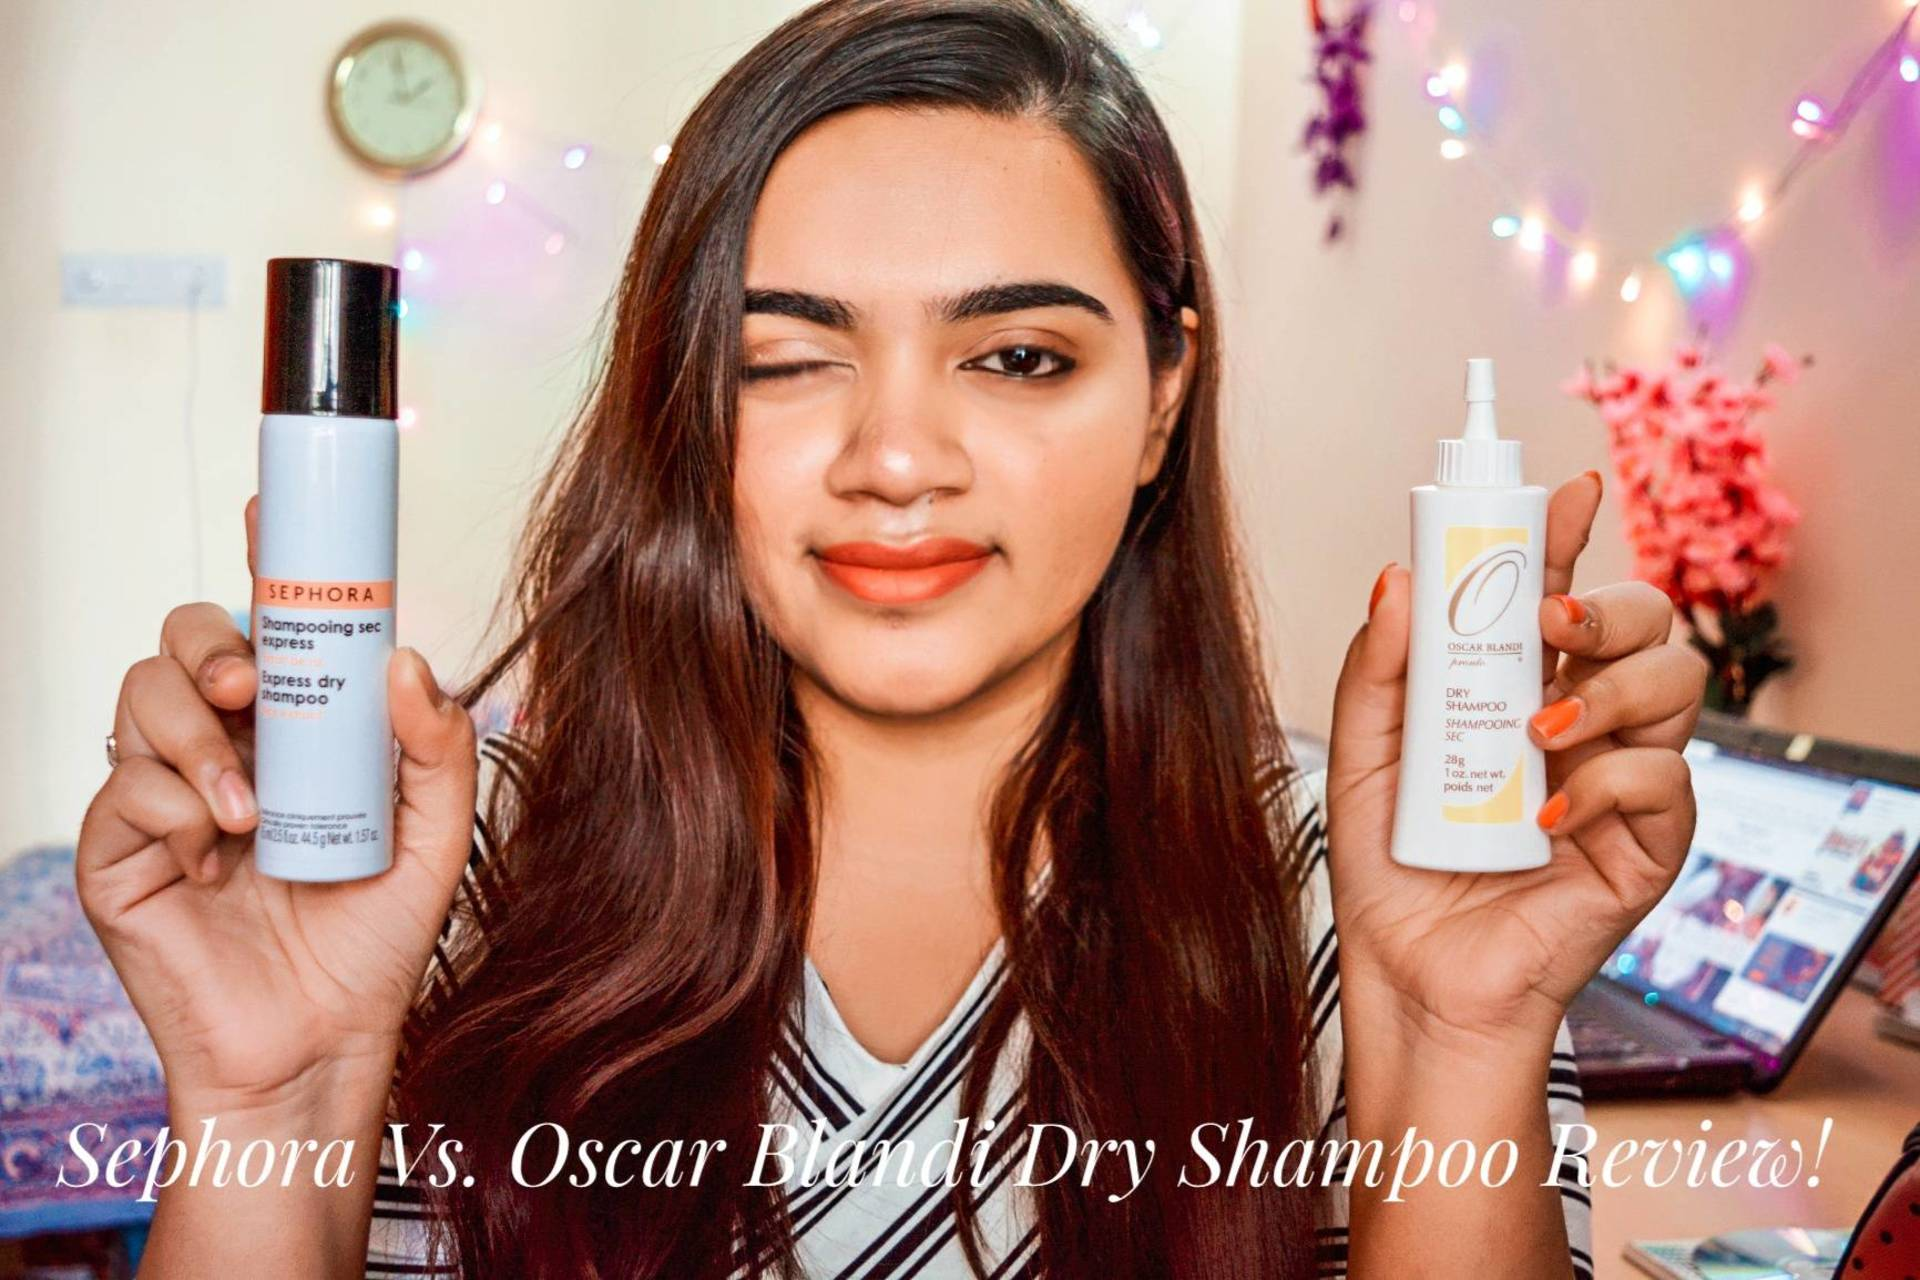 Sephora Vs. Oscar Blandi Dry Shampoo Comparision Review!  image